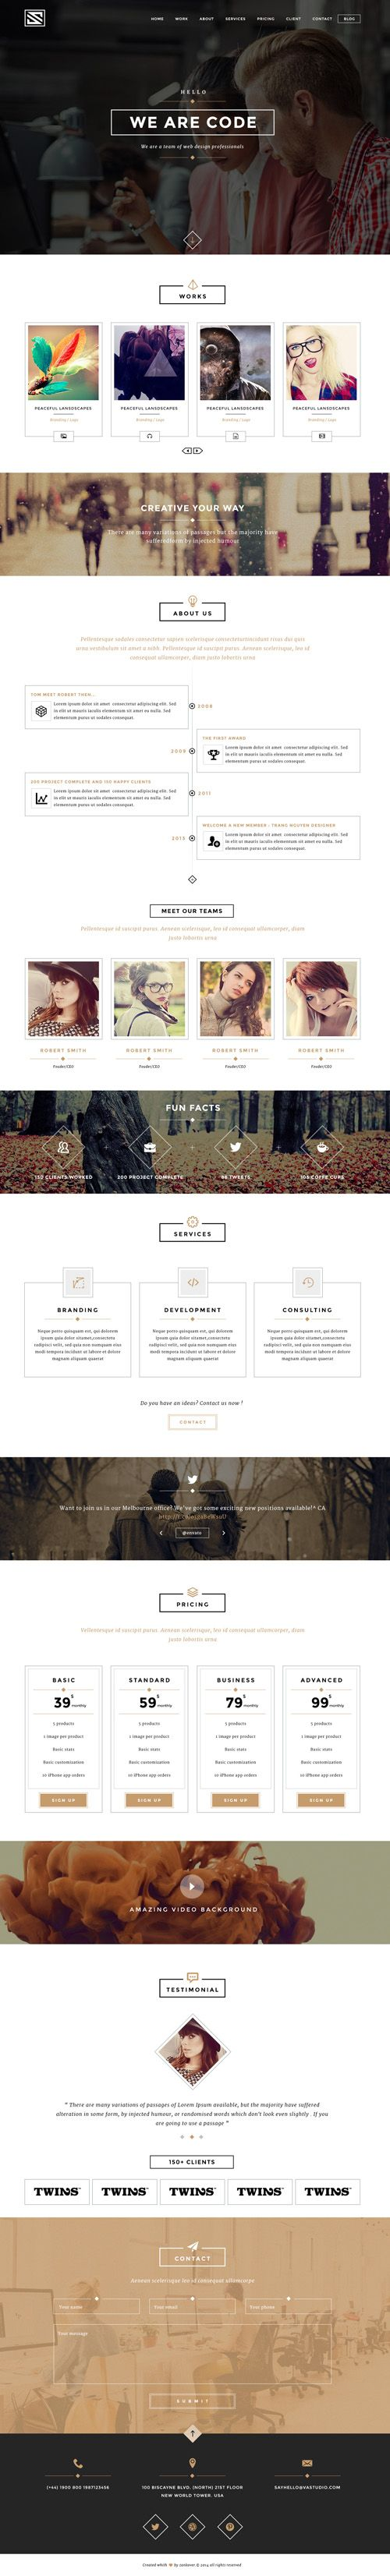 Vastudio - Creative One Page PSD Template #psdtemplates #onepagetemplates #businesstemplates #websitetemplates